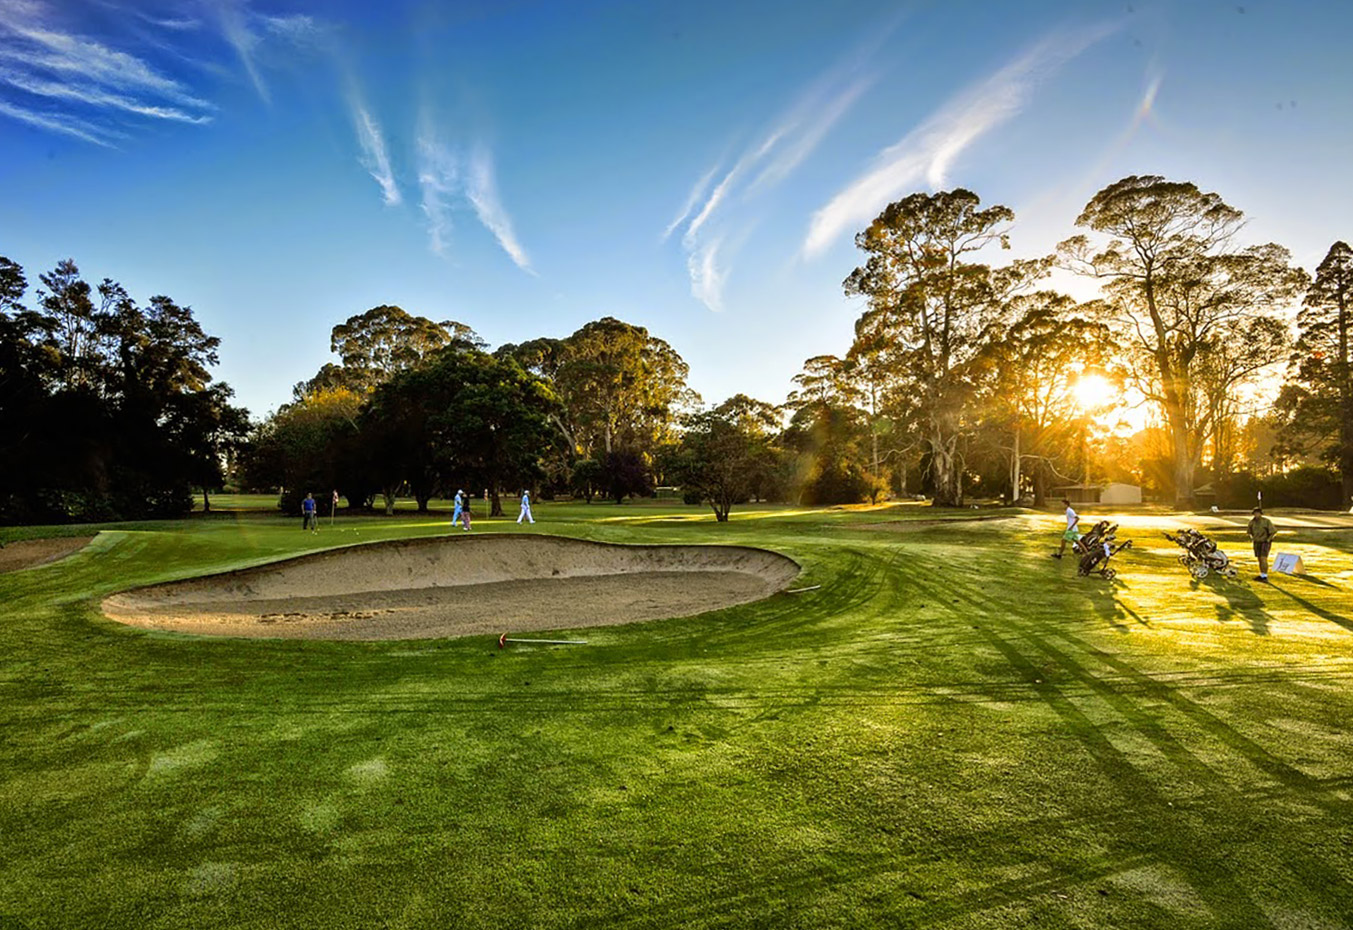 We'll also play Hastings GC